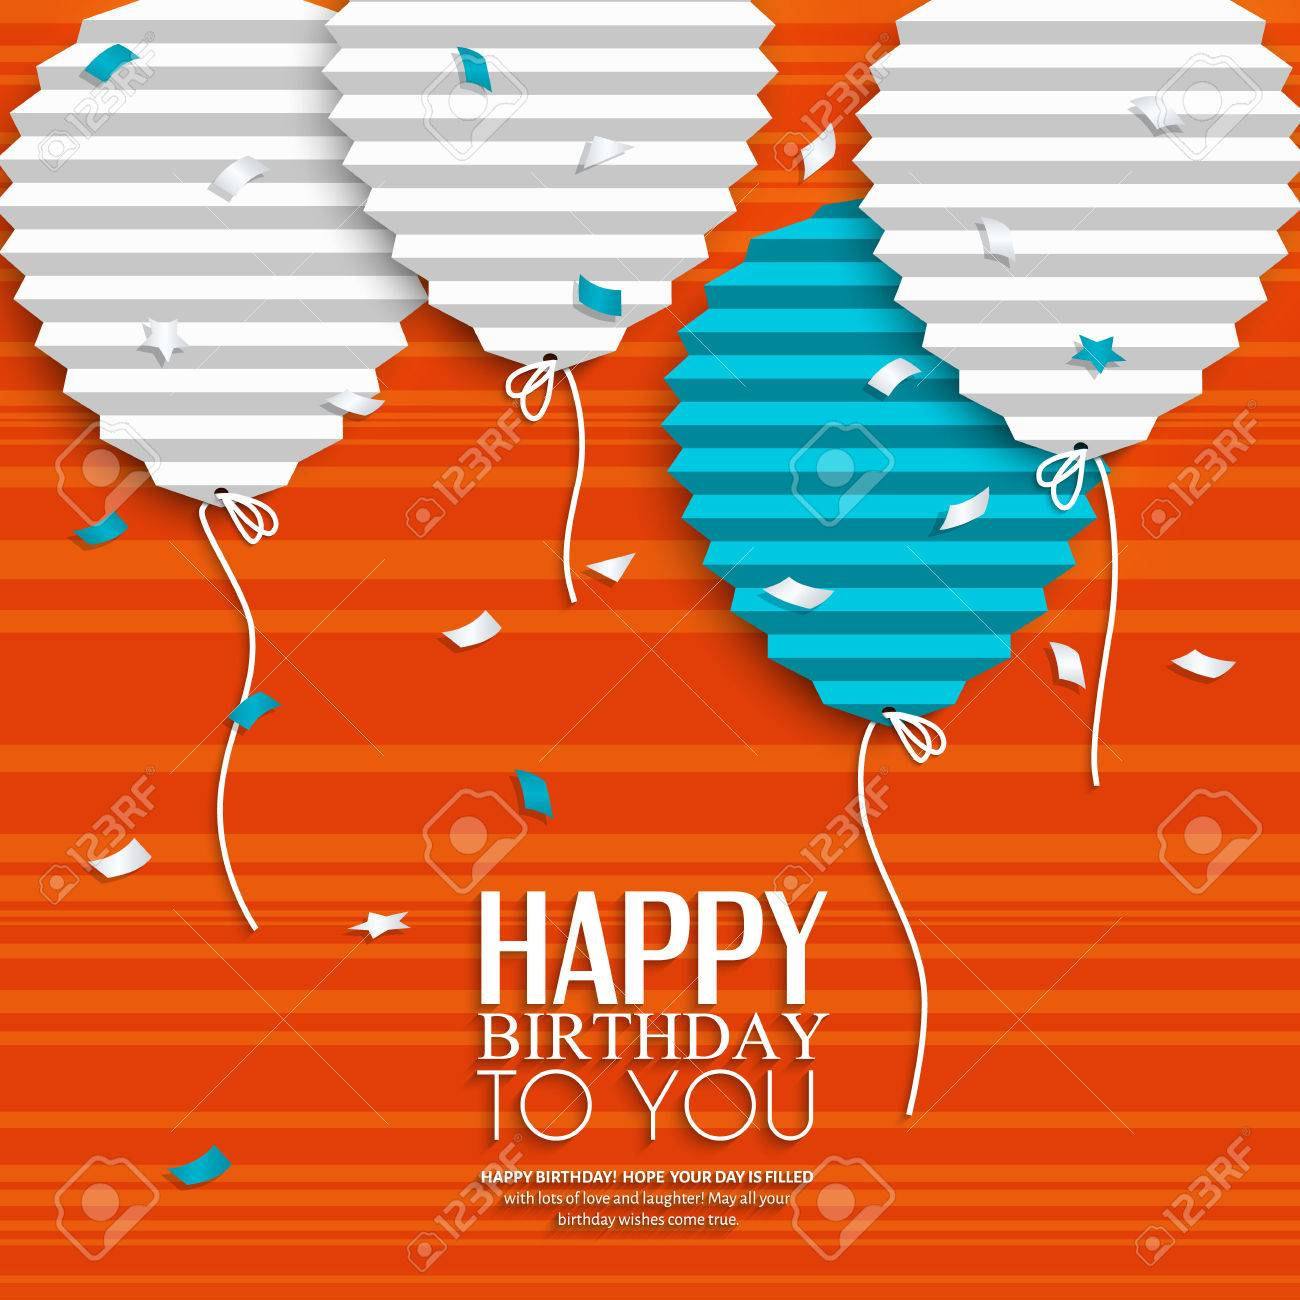 Birthday card with balloons in the style of flat folded paper. - 32387010